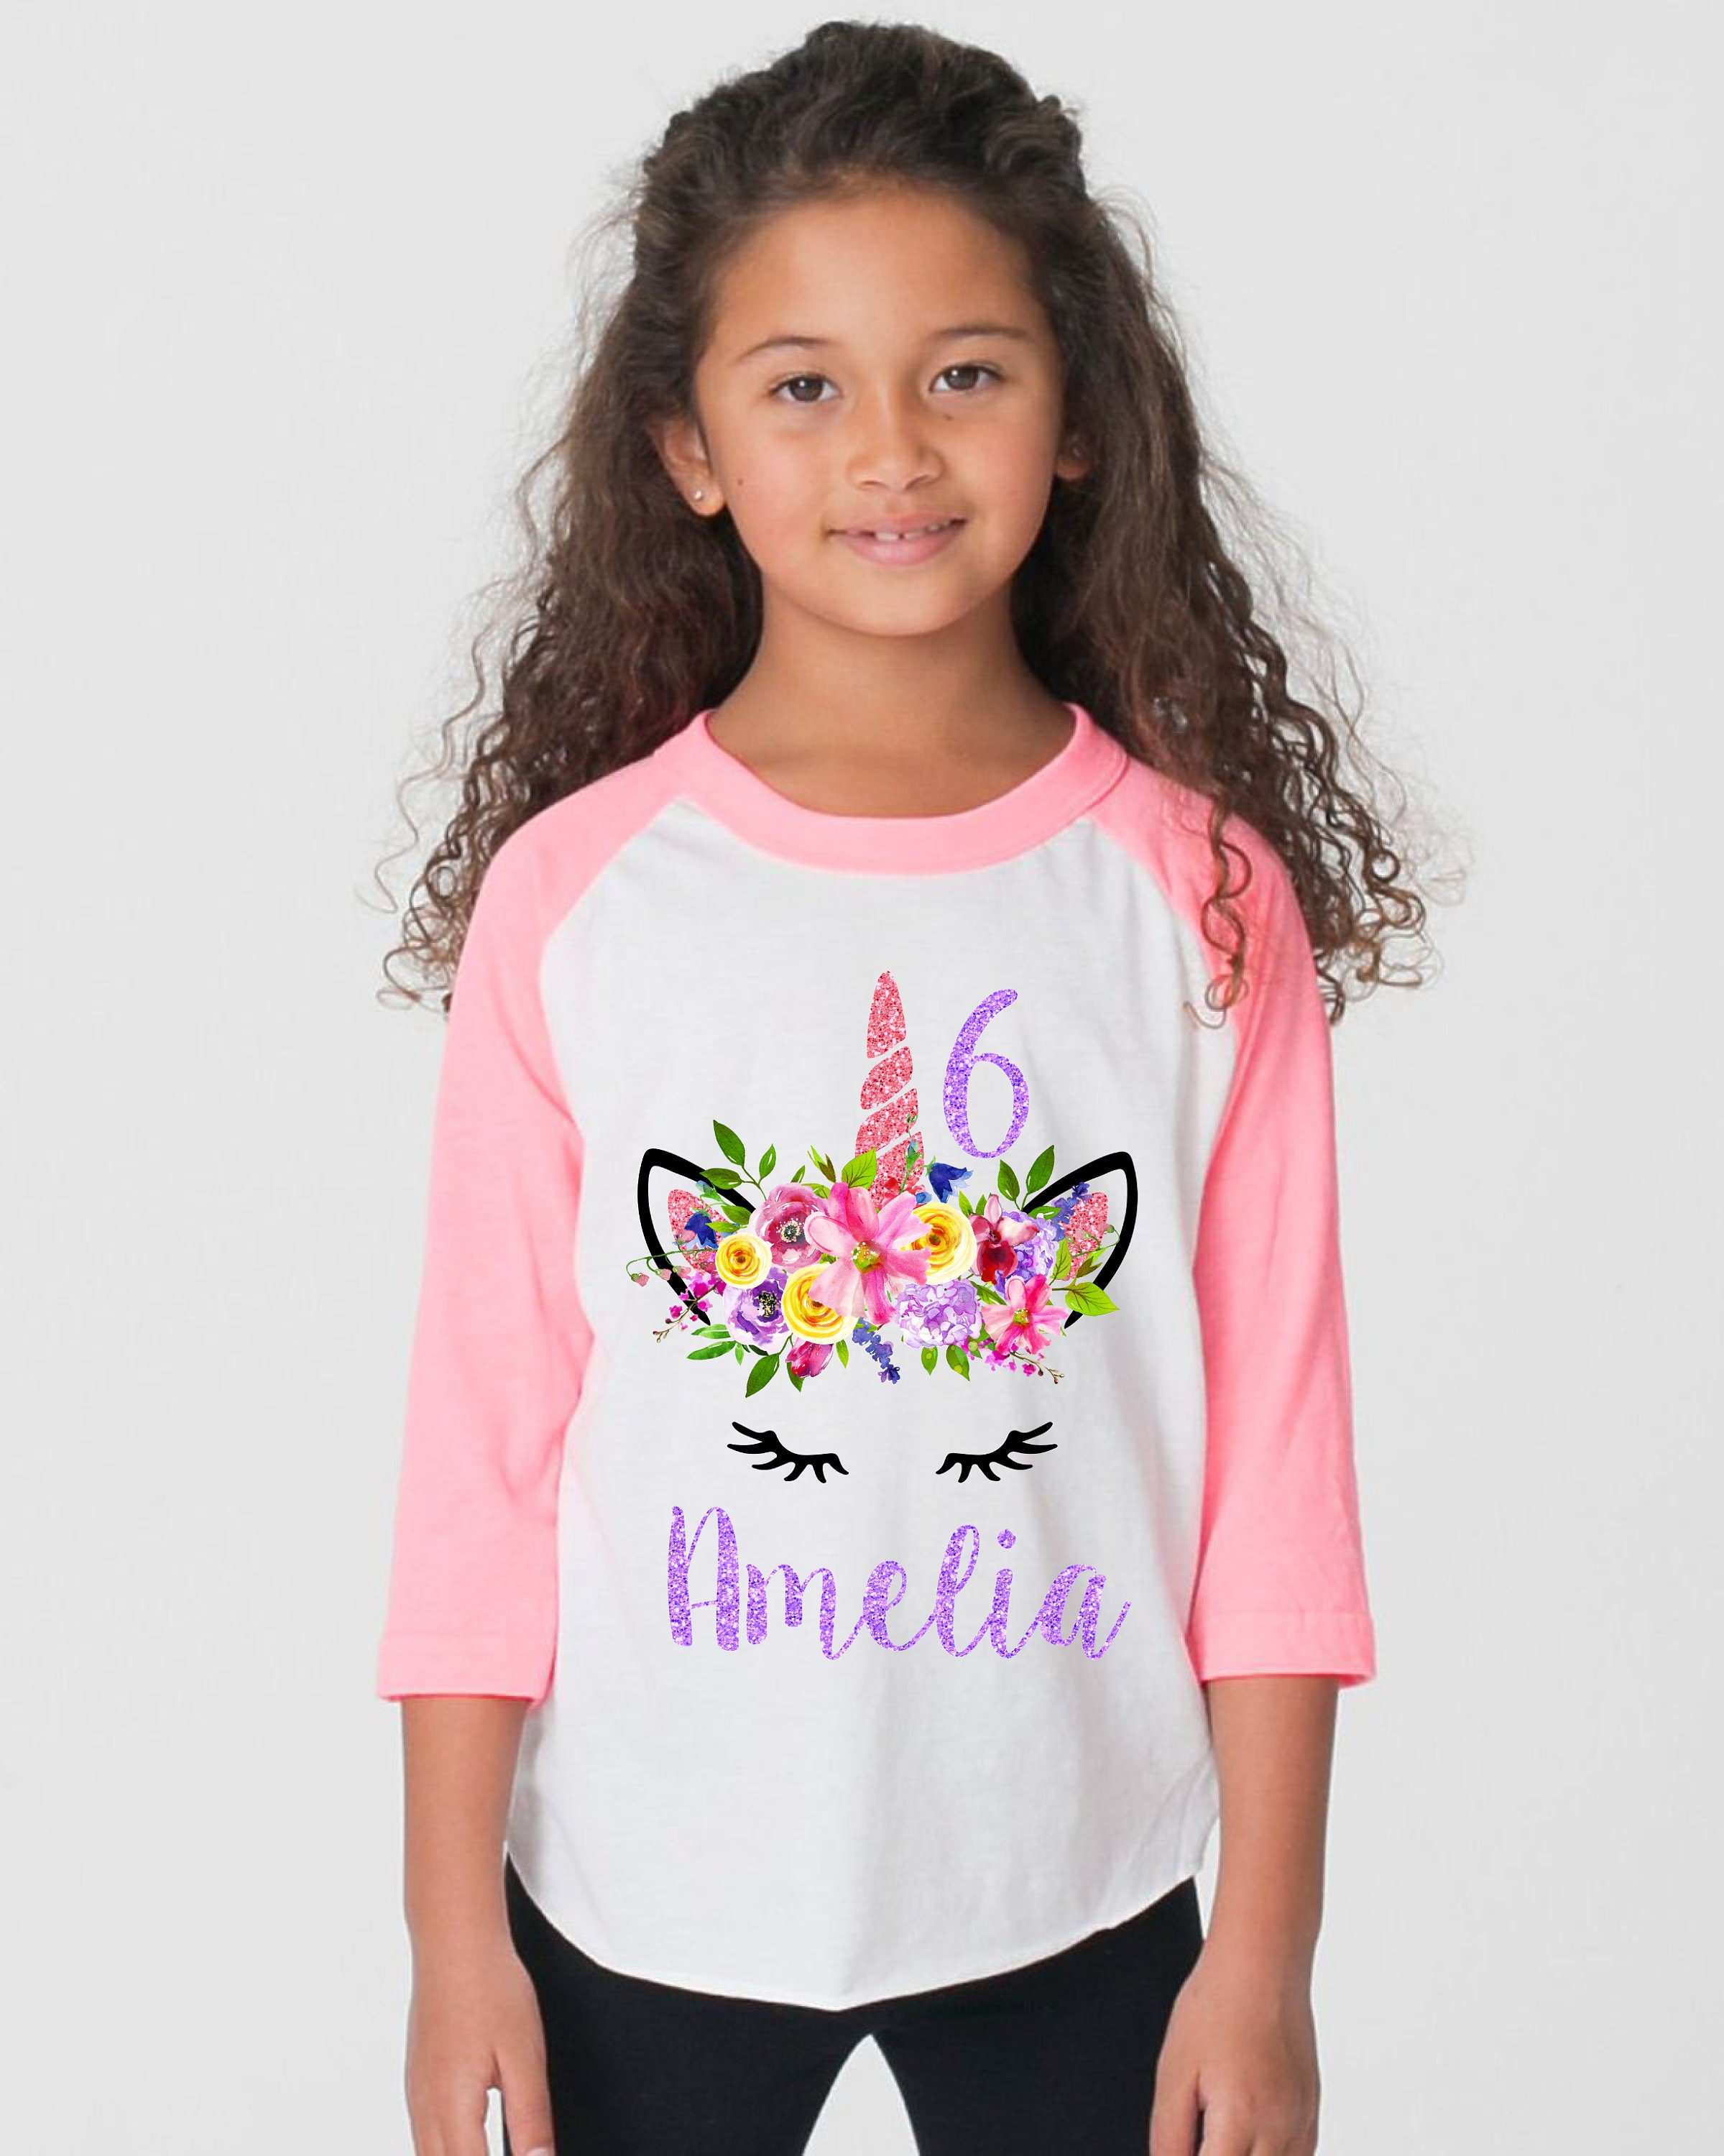 4b4379962 ... Personalized Name Watercolor Floral Unicorn Spring Unicorn Raglan Shirt  Pink Purple Bright Unicorn Flowers. gallery photo gallery photo